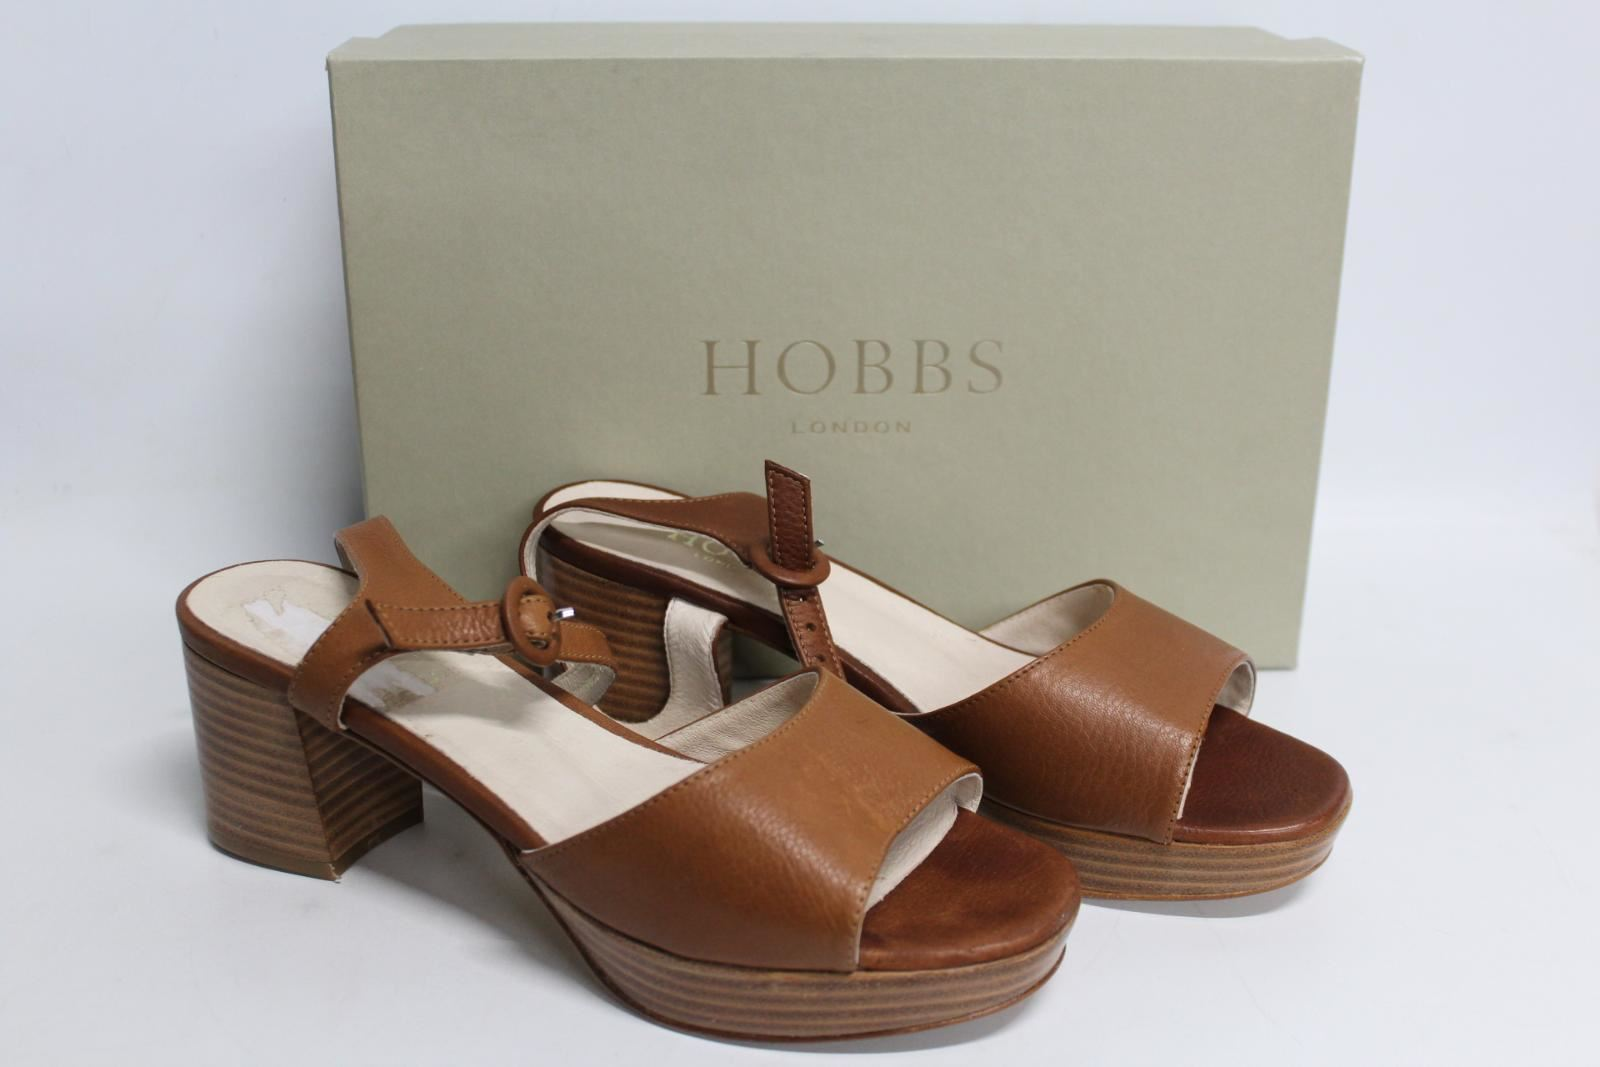 HOBBS-Ladies-Brown-Tan-Leather-Emmy-Ankle-Strap-Heeled-Sandal-Shoes-EU38-UK5-NEW